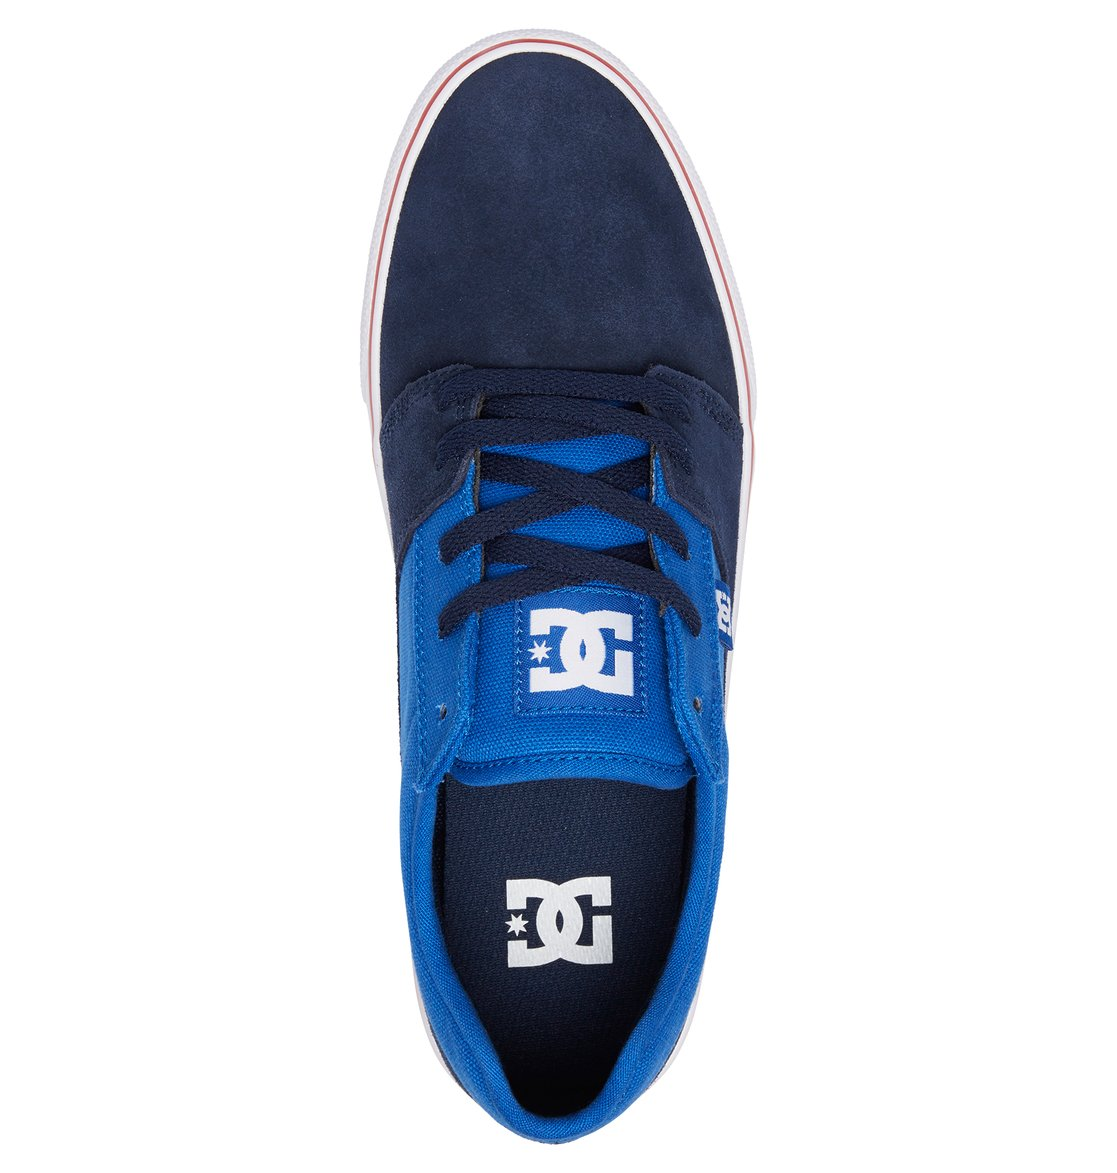 DC-Shoes-Tonik-Baskets-pour-Homme-302905 miniature 18